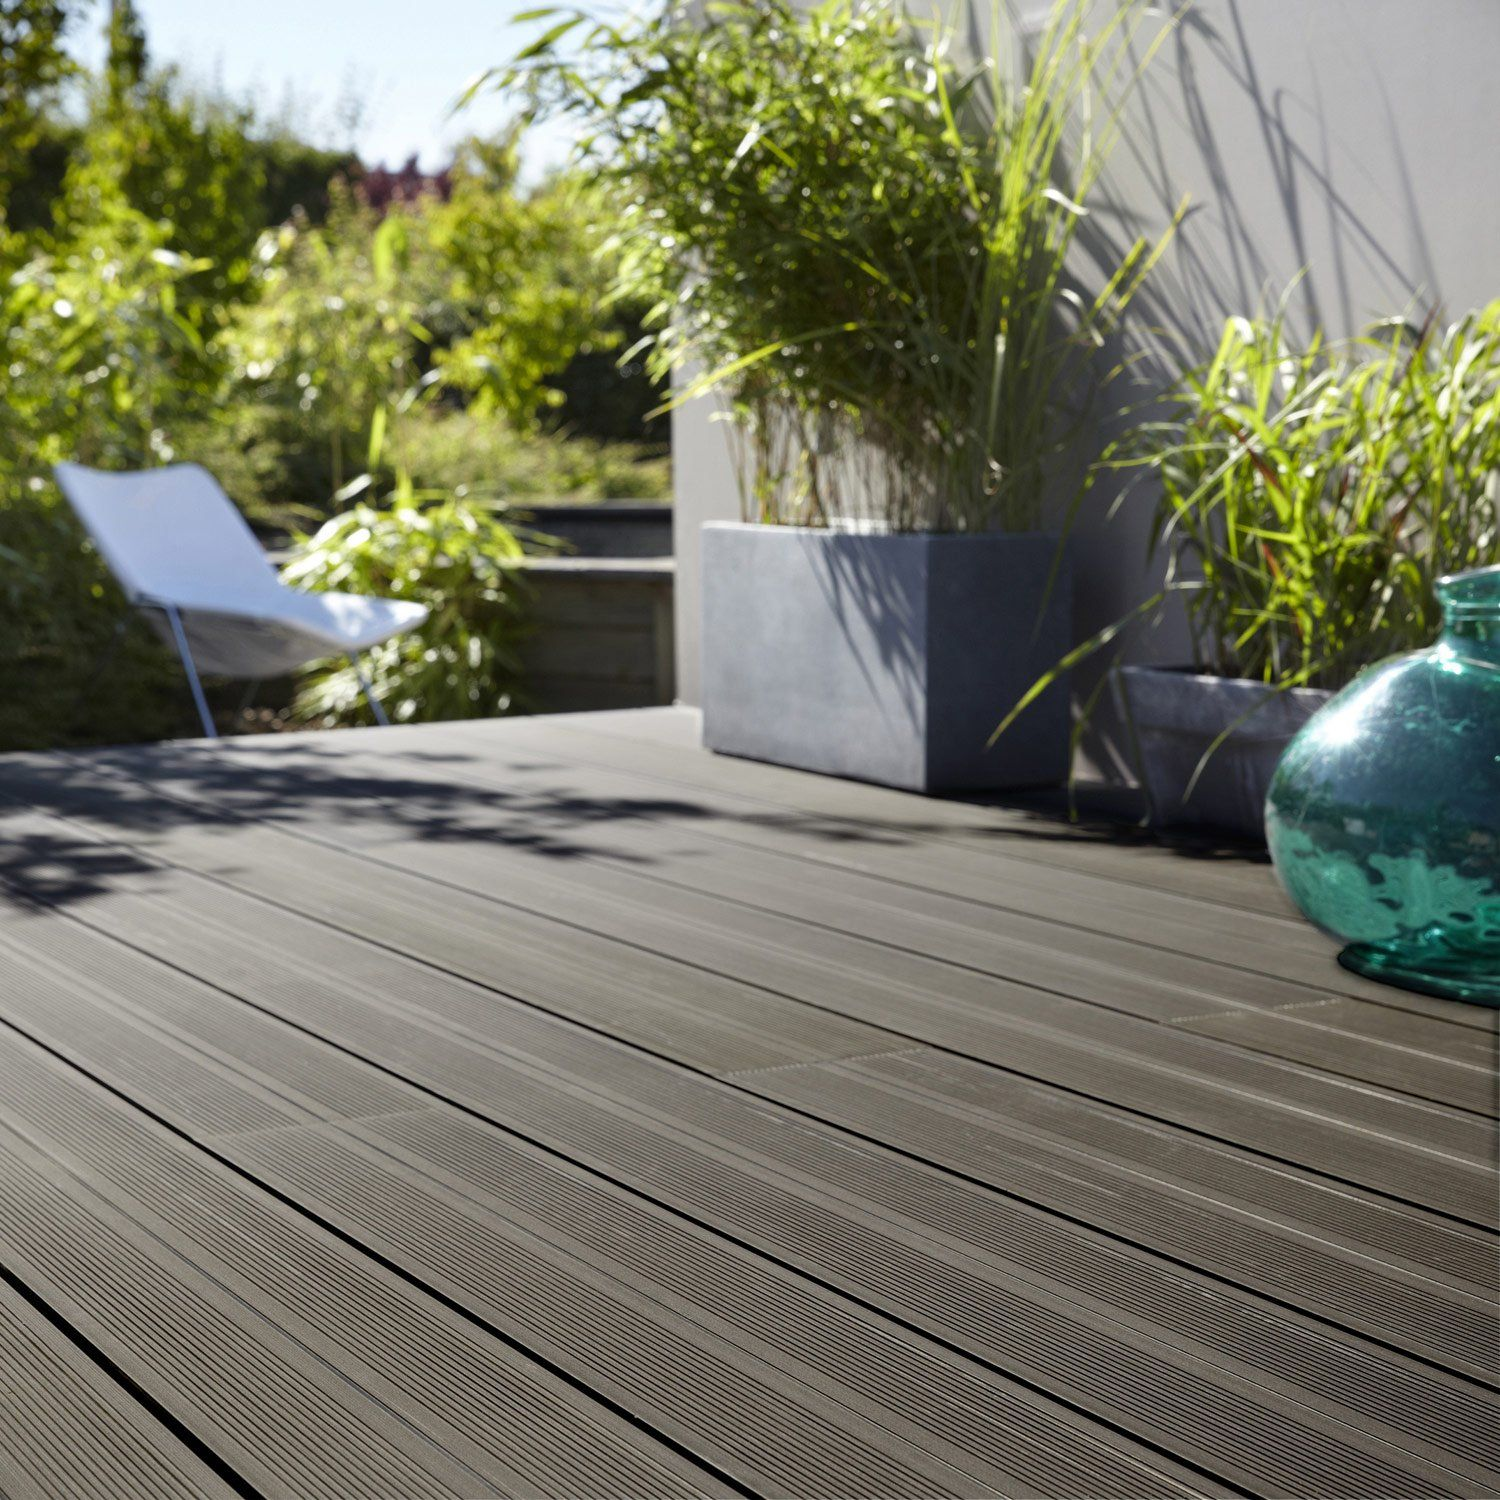 Interlocking Composite Floor Tiles In Dubai Outdoor Decking Fence Wpc Decking